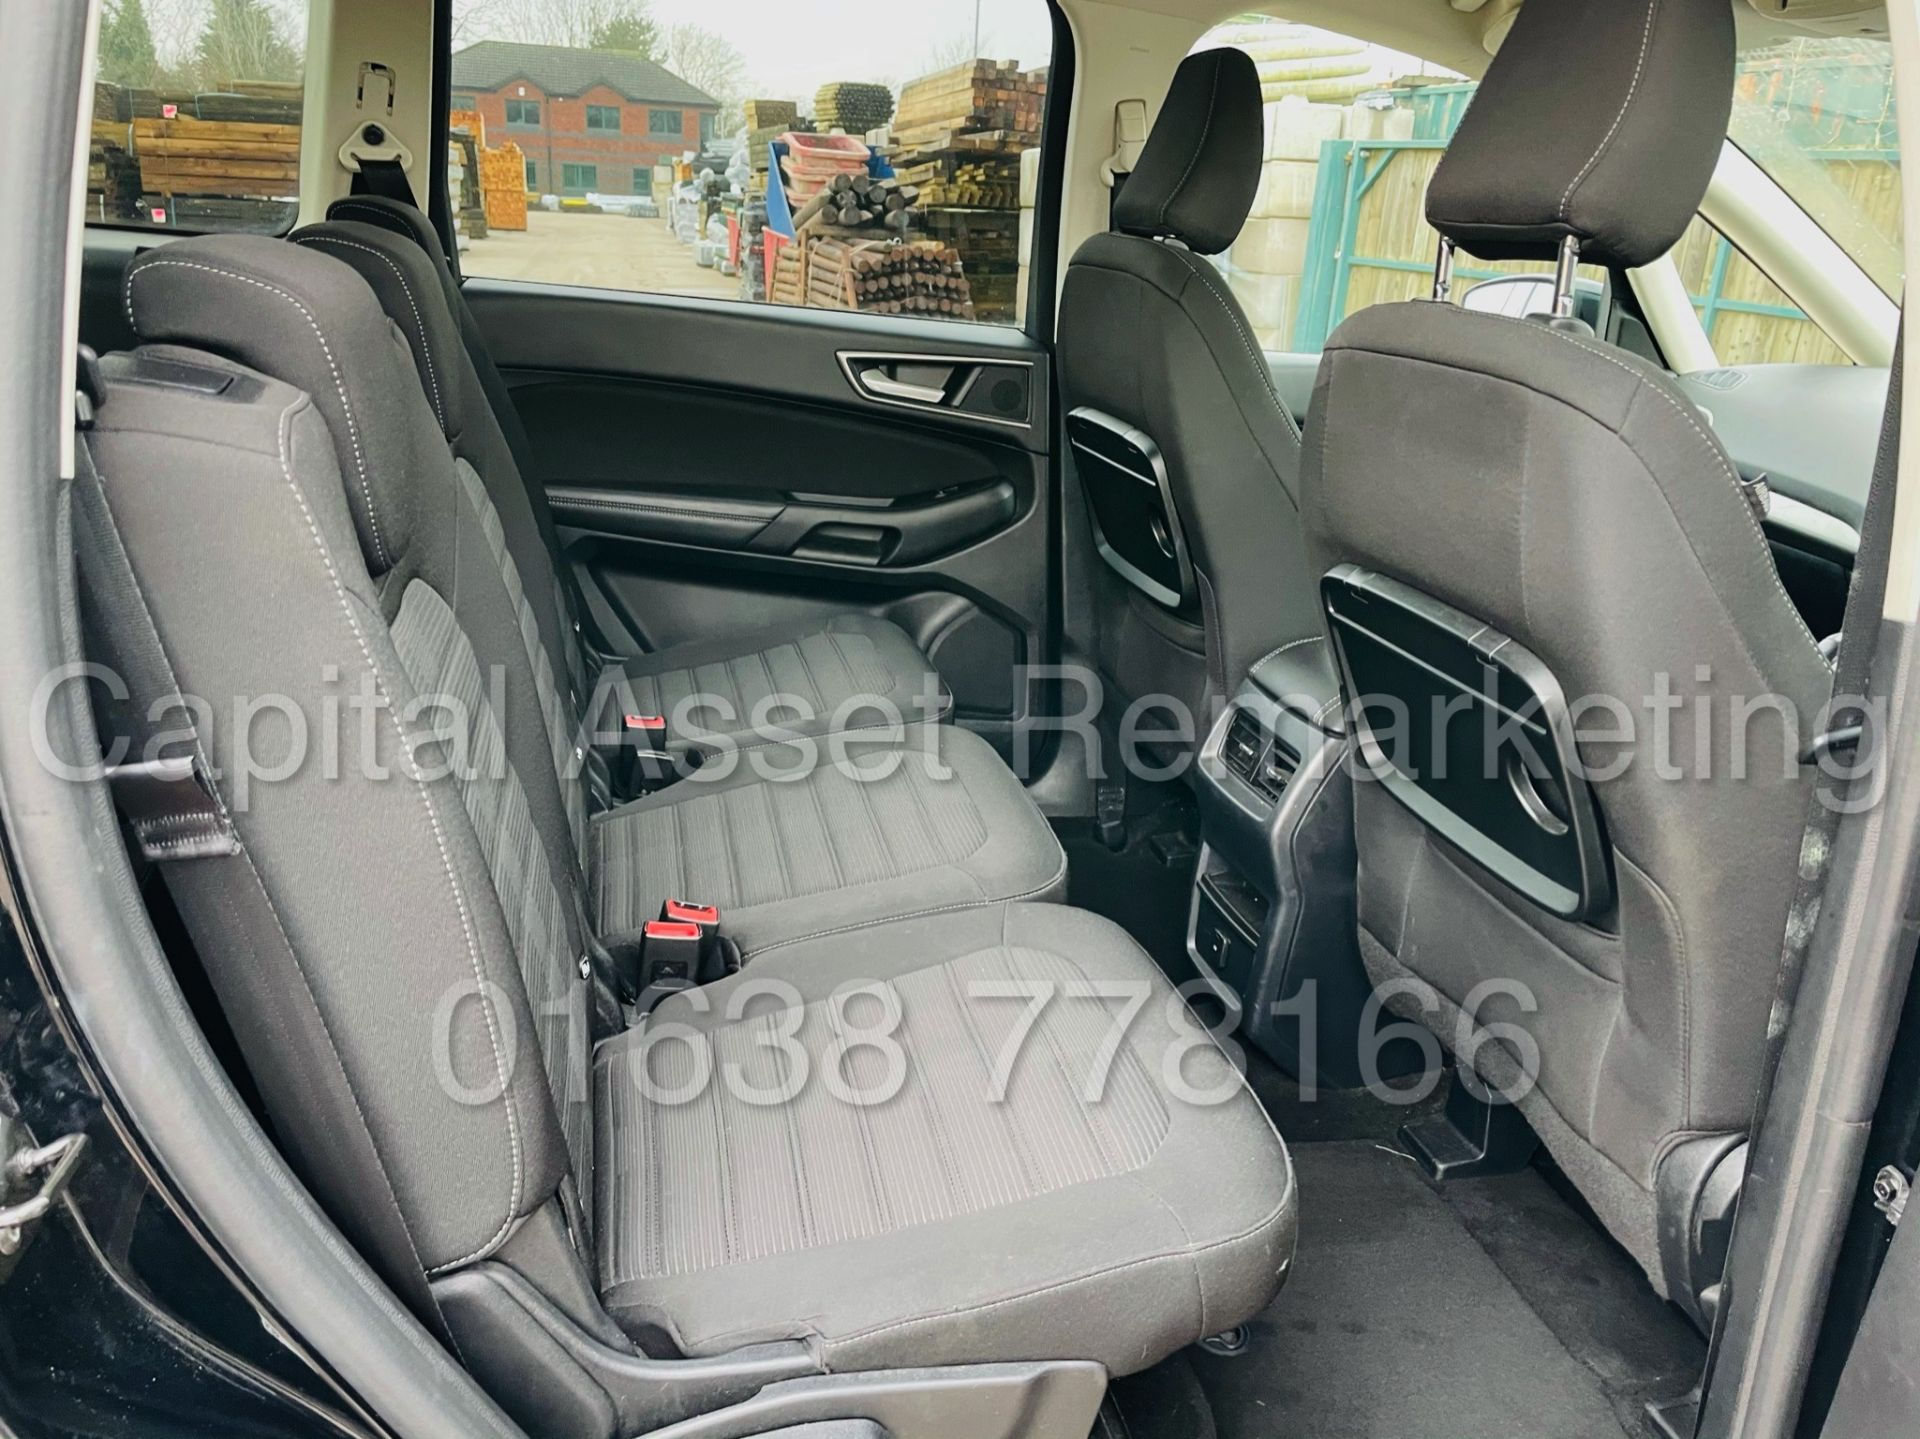 (On Sale) FORD GALAXY *ZETEC EDITION* 7 SEATER MPV (2017 - EURO 6) '2.0 TDCI - AUTO' (1 OWNER) - Image 29 of 48